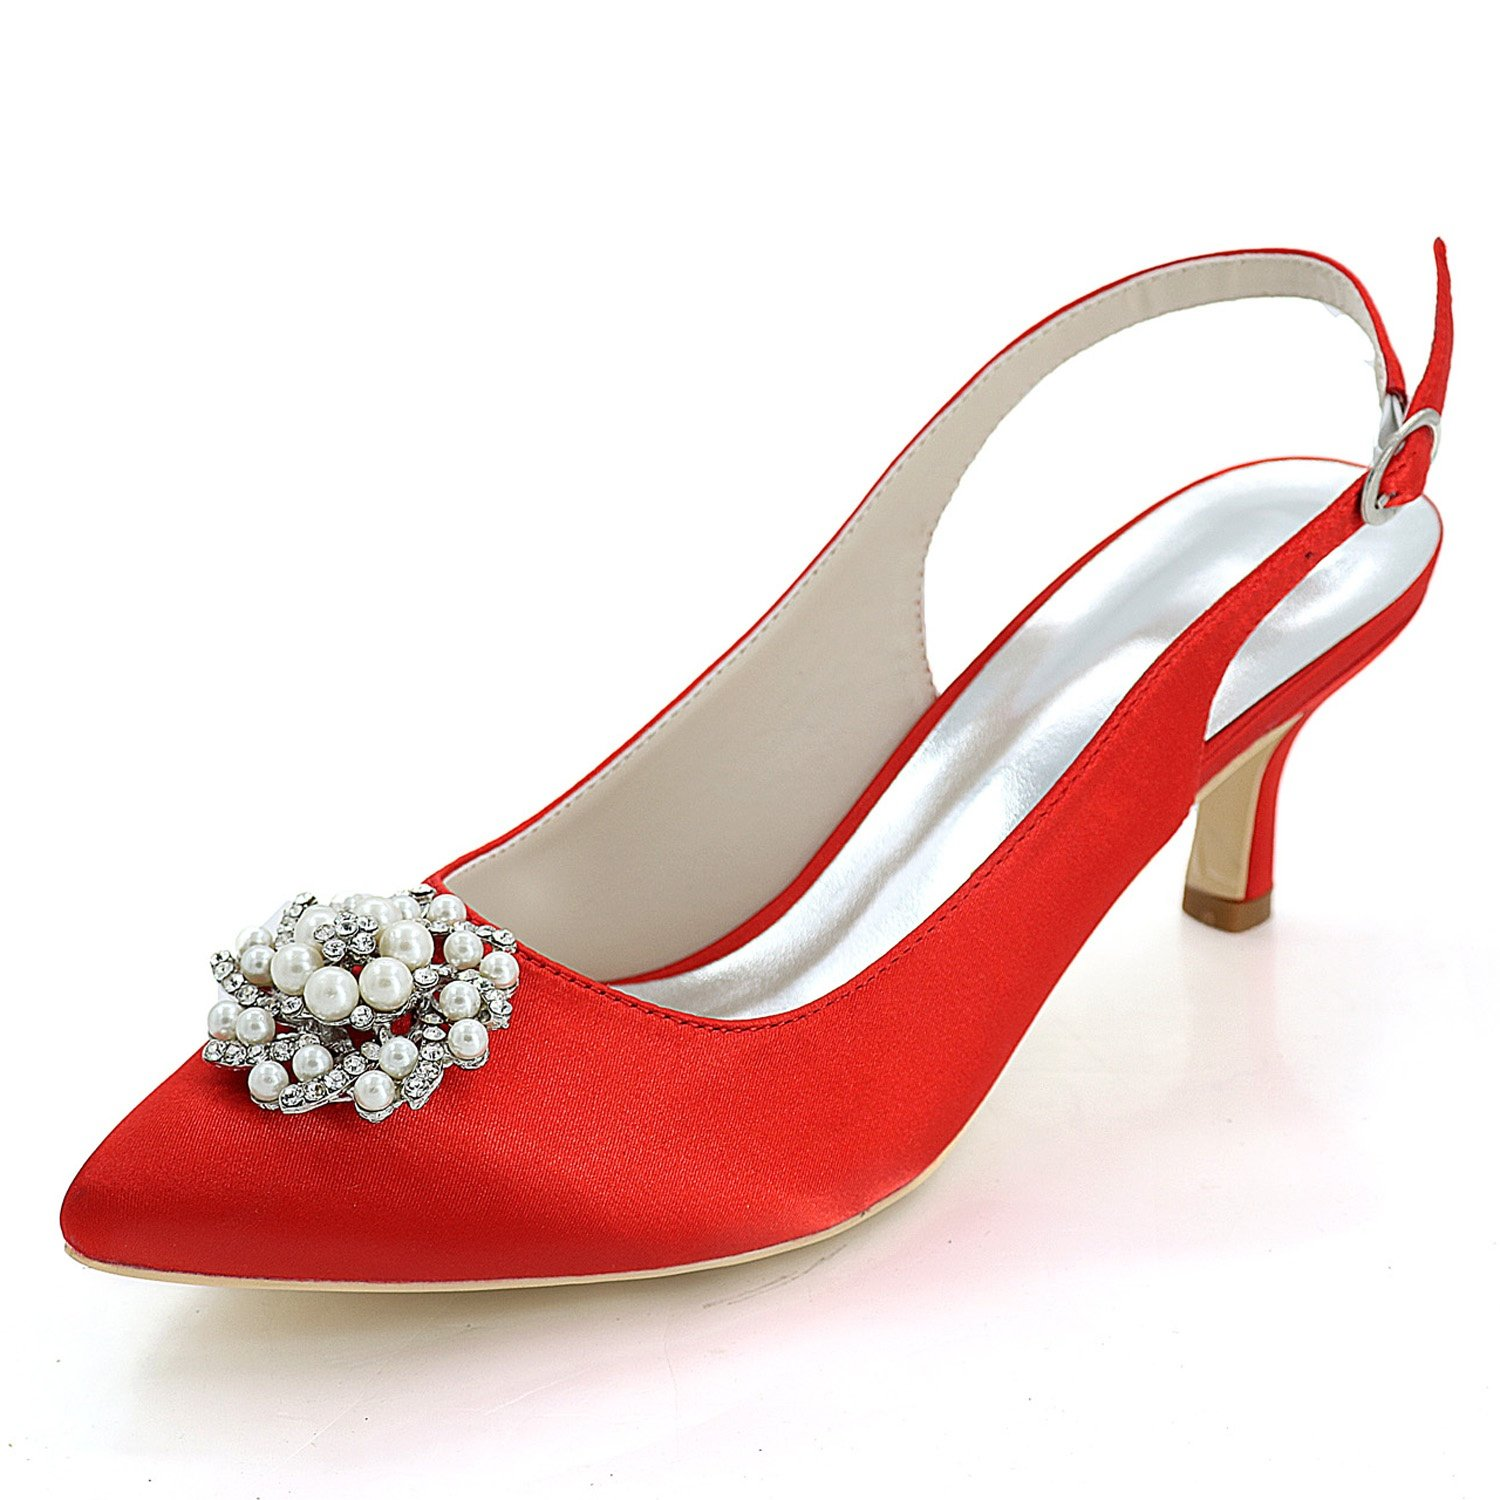 ace2d7da57e72 Elobaby Women's Wedding Shoes Handmade for Platform Ankle Strap Satin High  Heels Closed toe/6cm Heel: Amazon.co.uk: Shoes & Bags